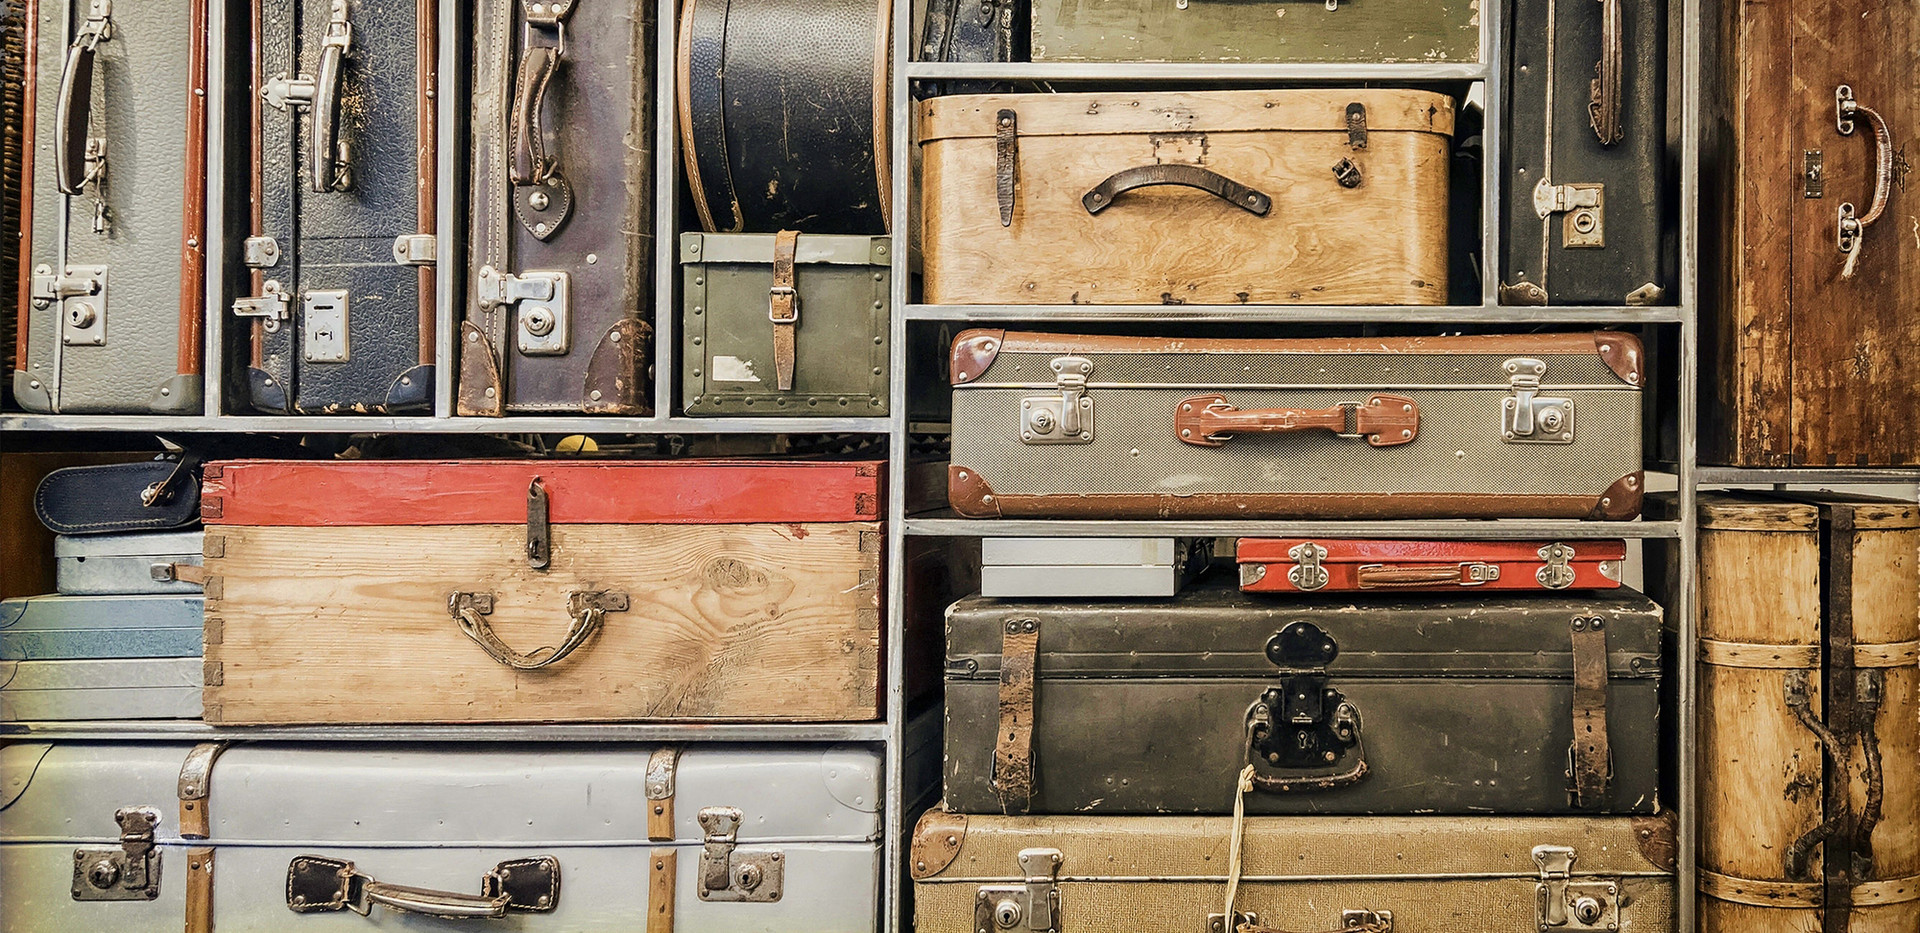 Vintage Luggage in Shelves